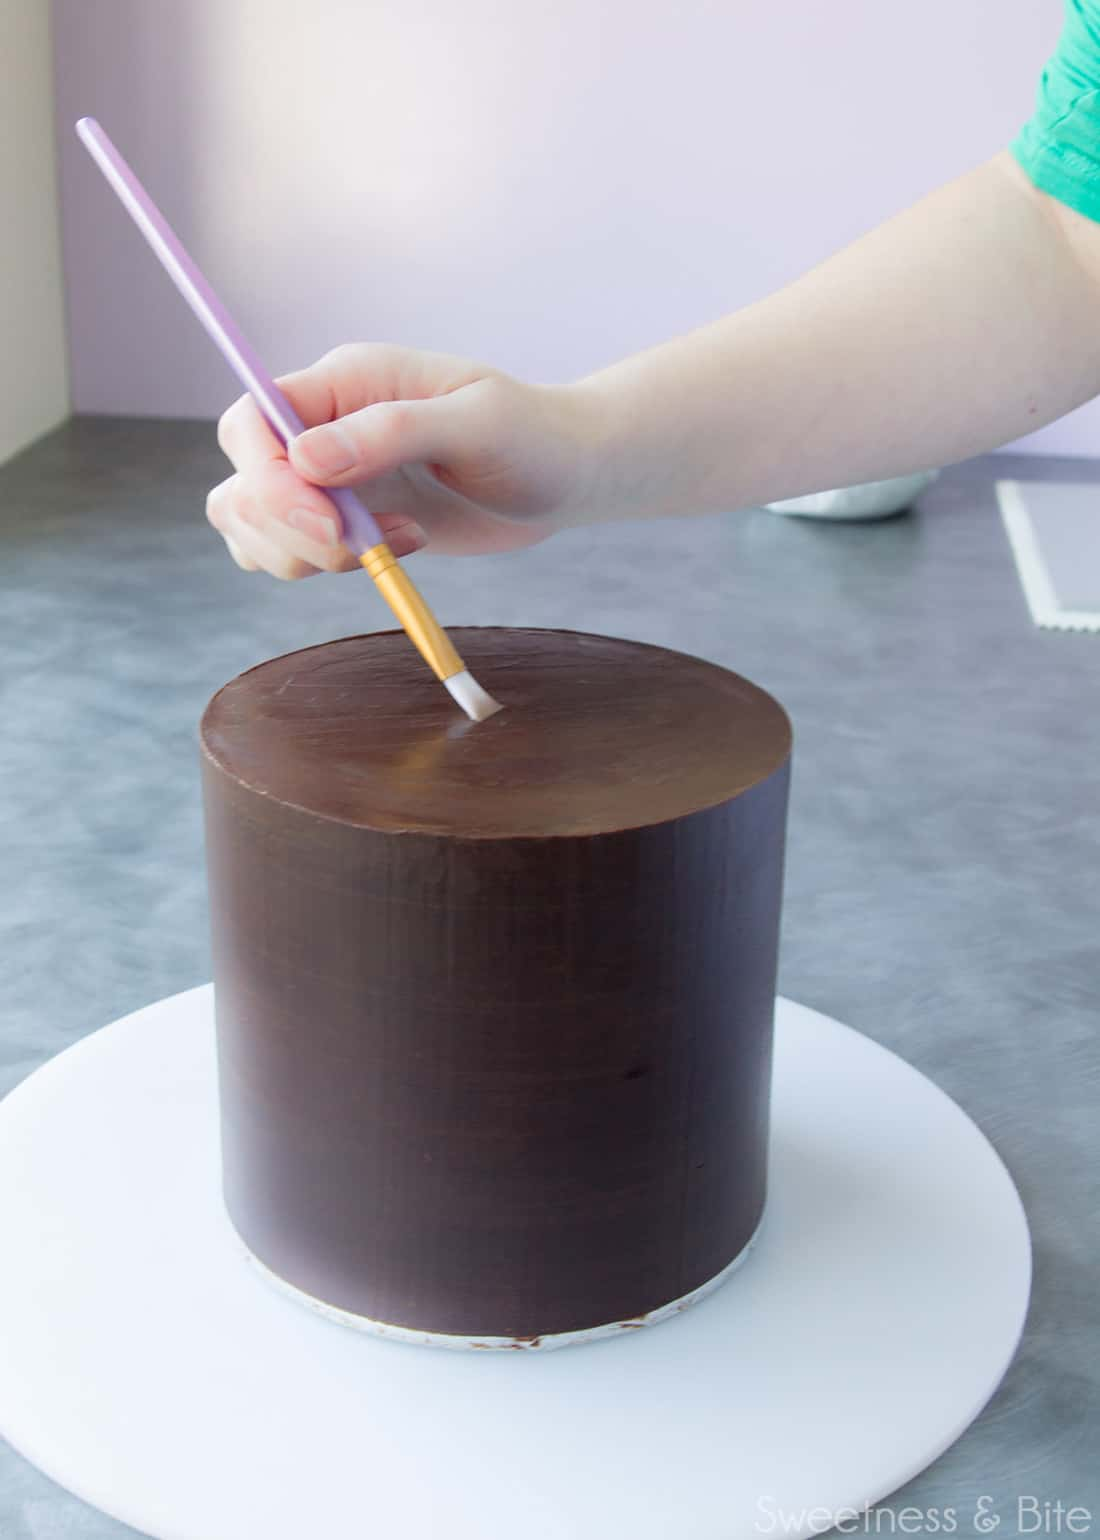 How to Wrap a Cake With Fondant ~ Sweetness & Bite